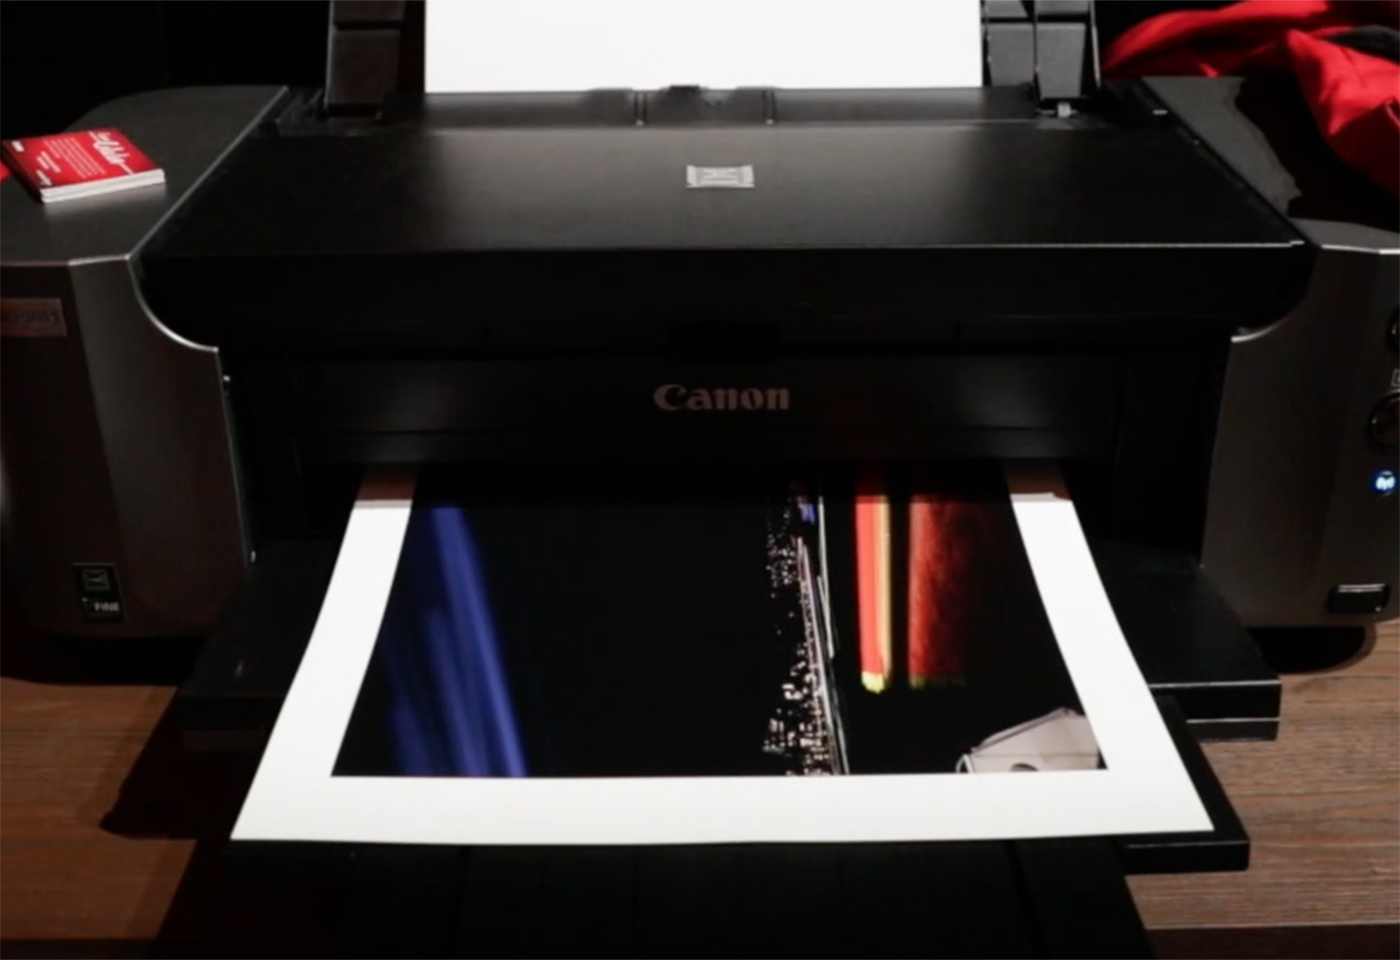 image of Canon printer printing